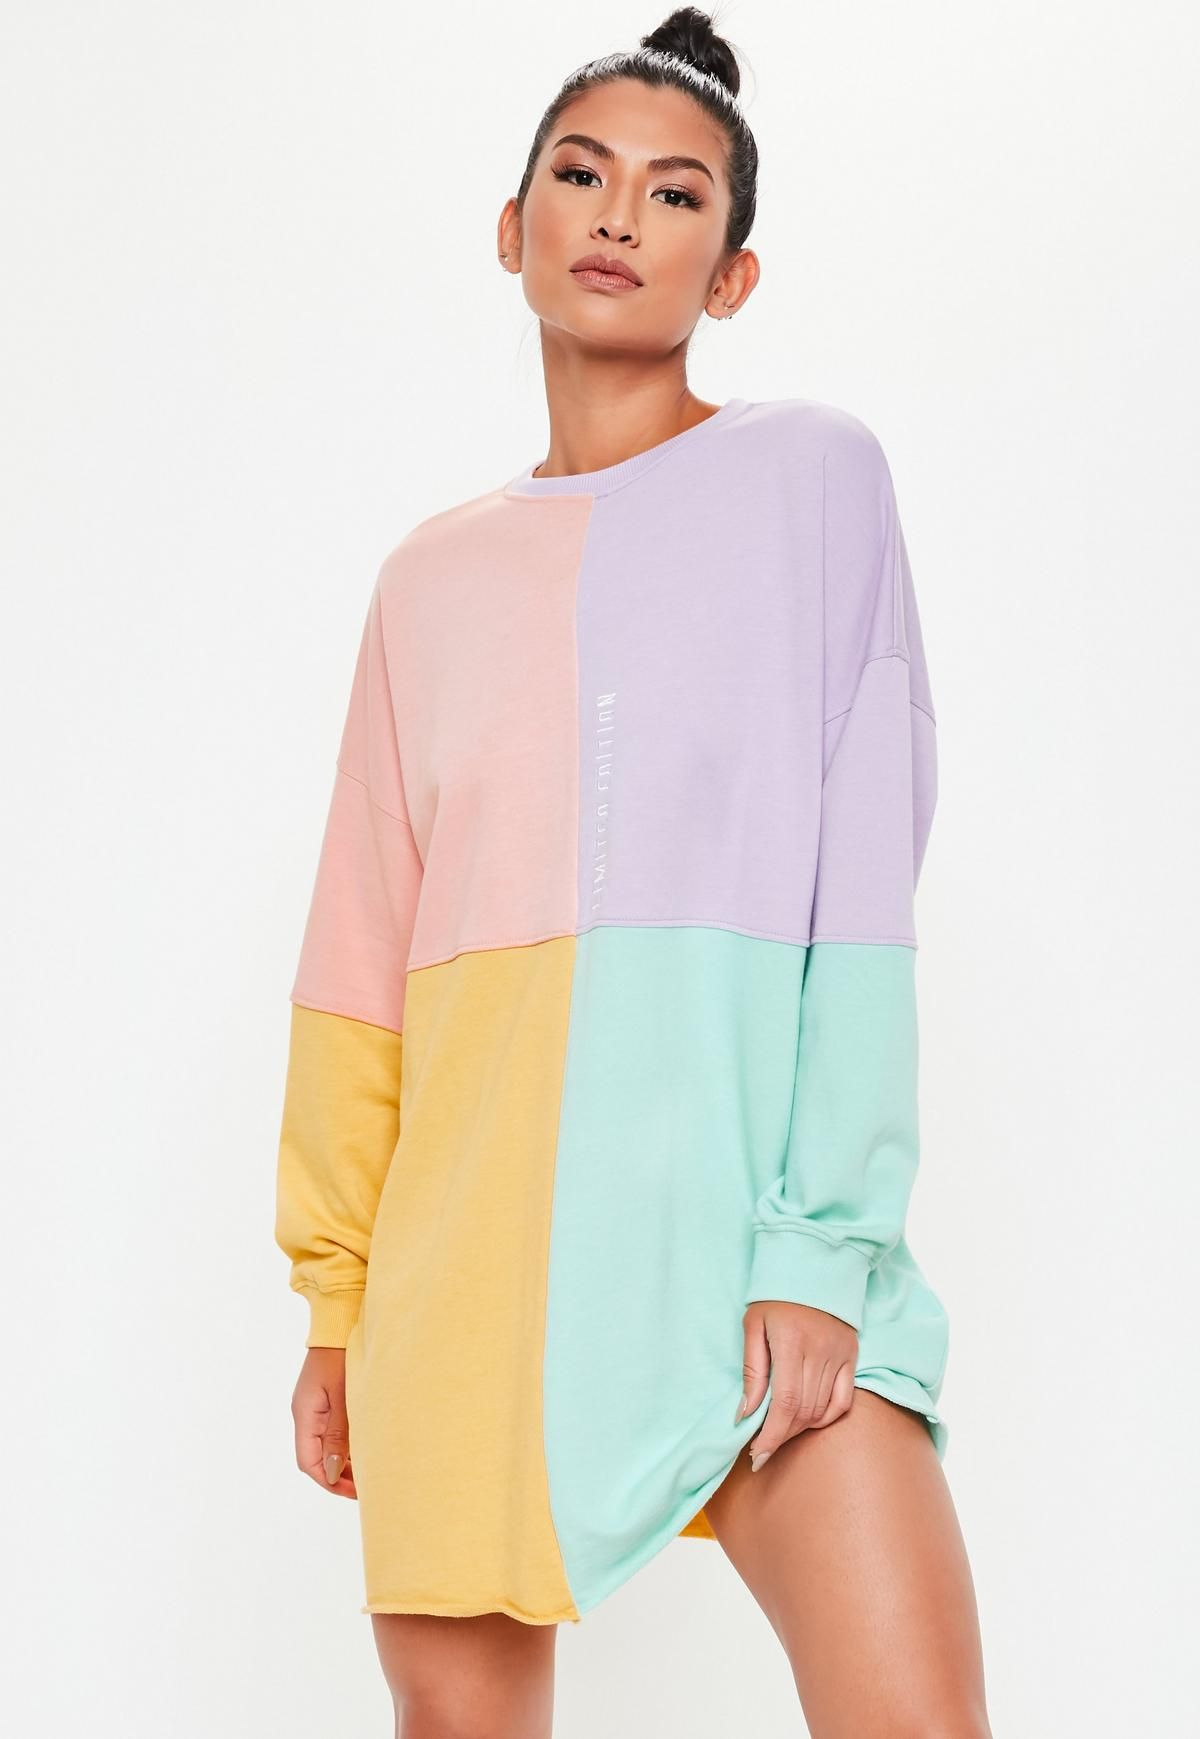 ed3b3f0f154 Missguided Pink Oversized Colorblock Sweater Dress in 2019